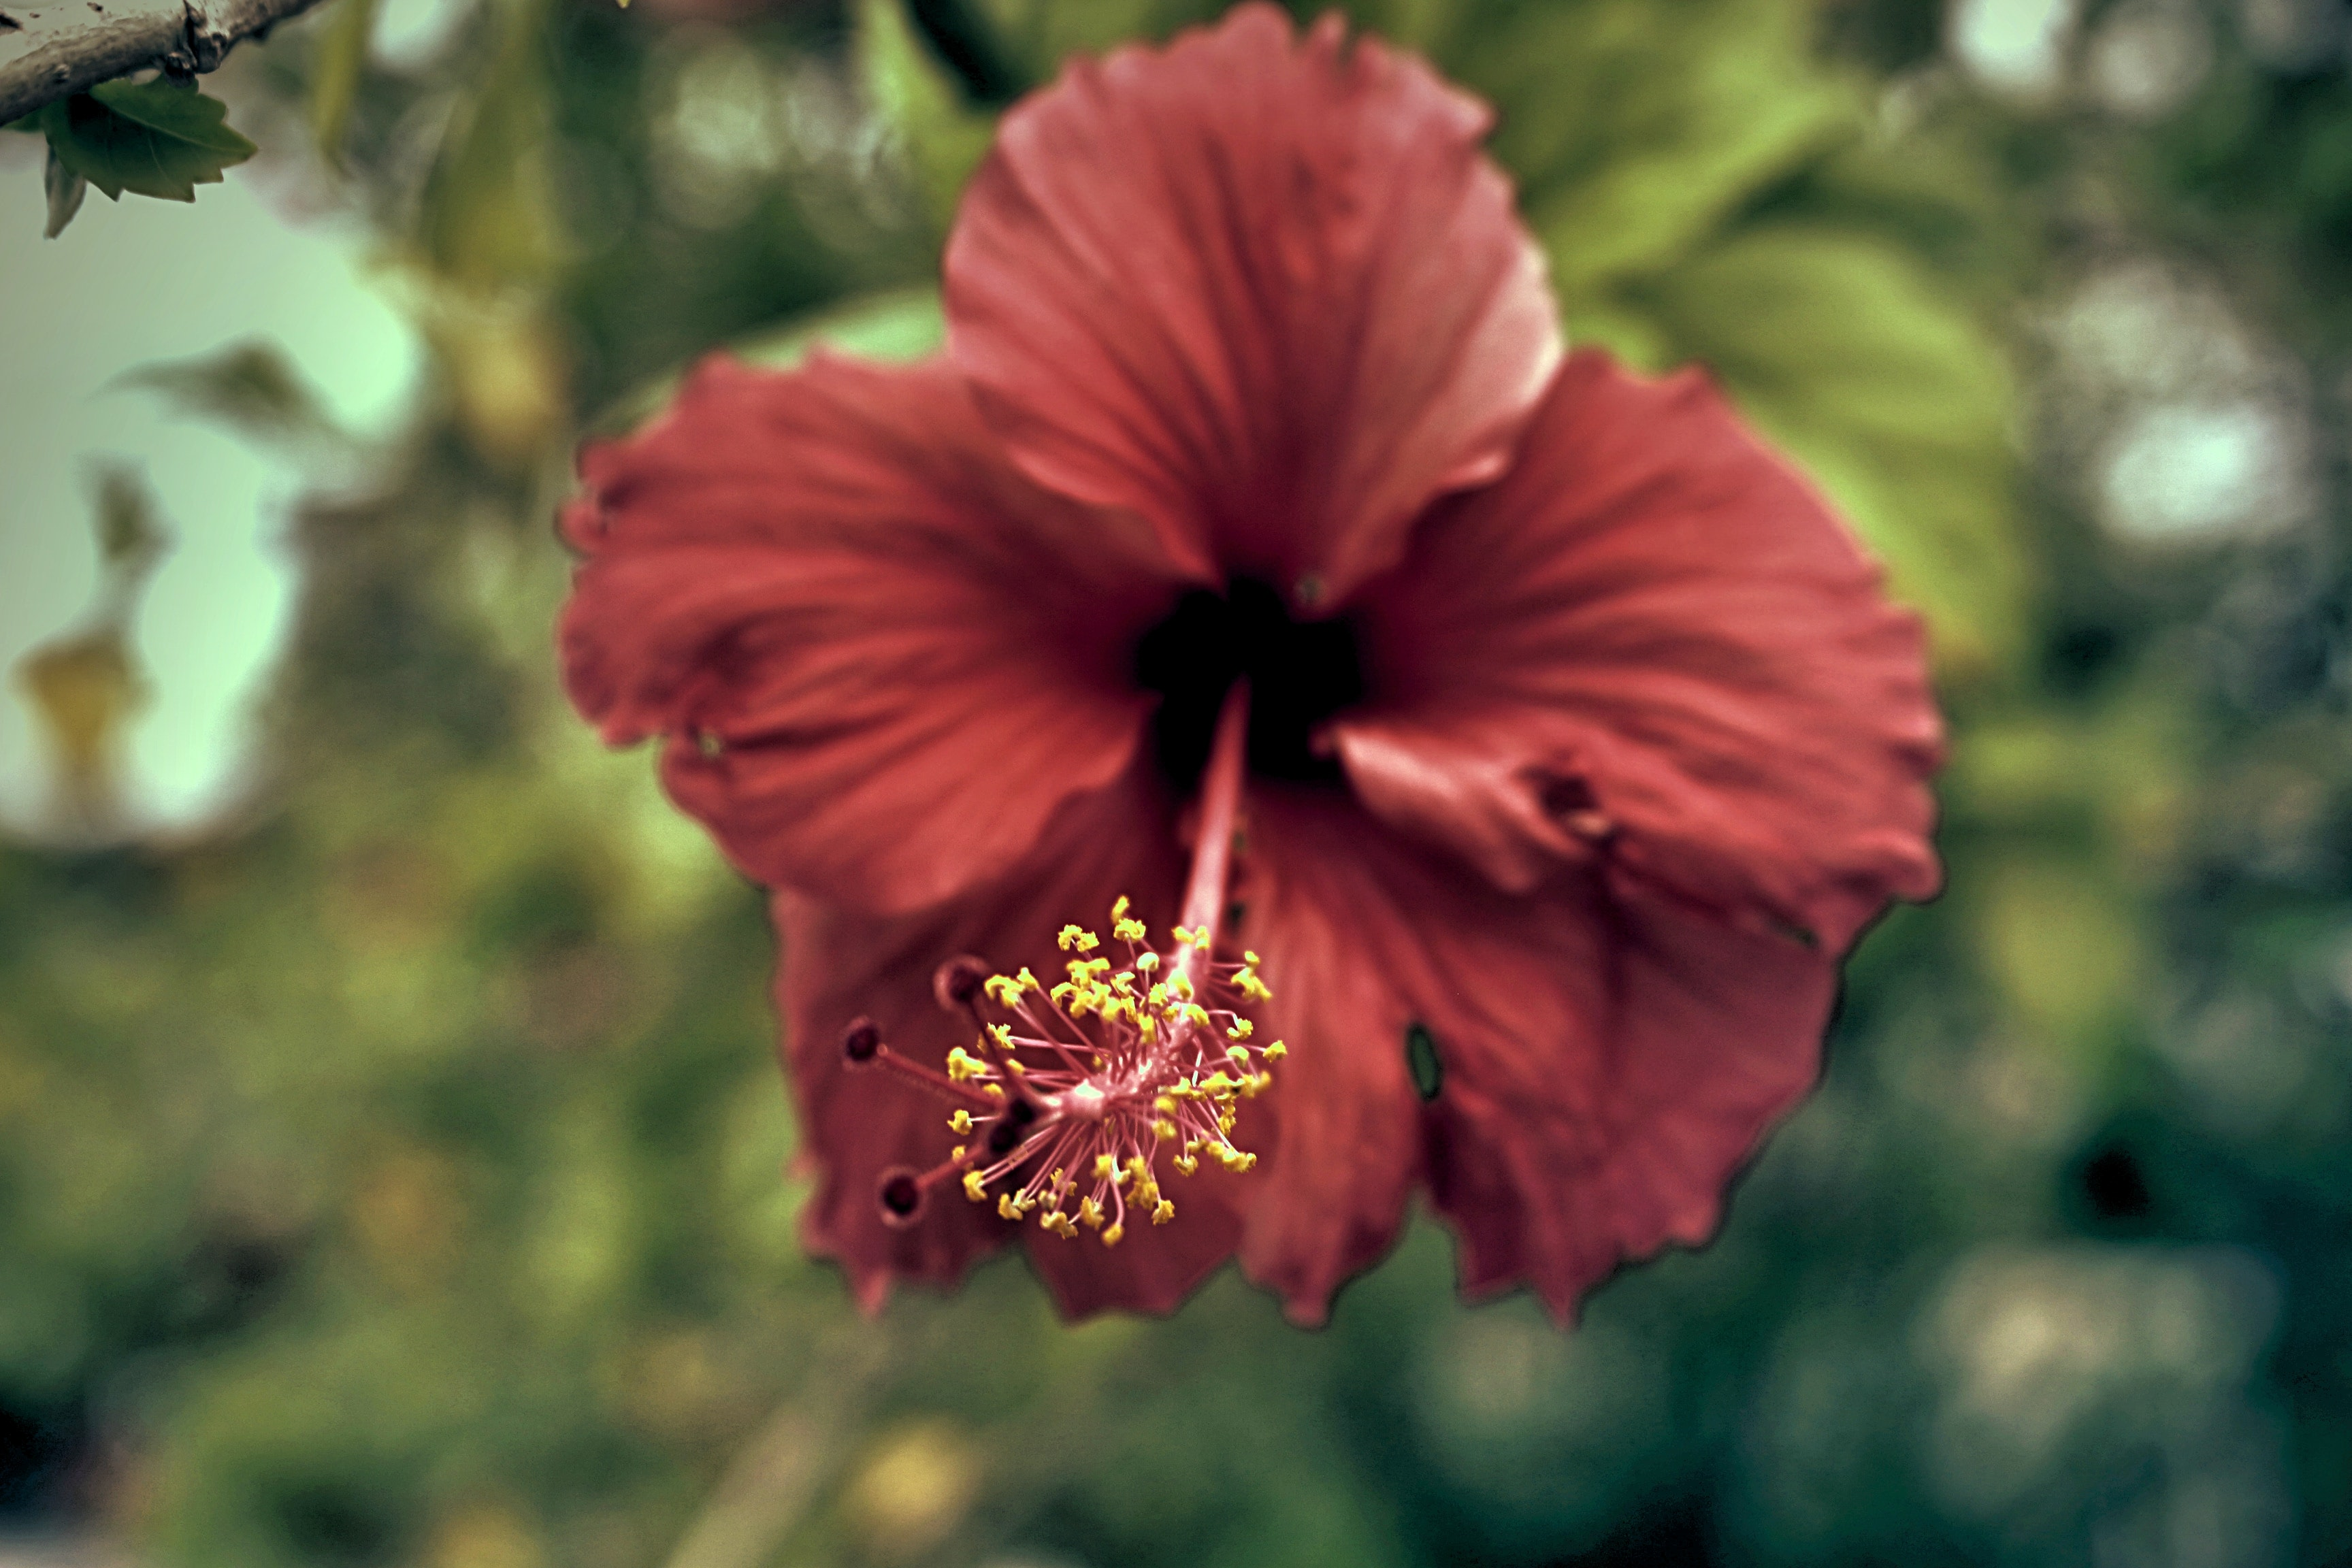 Red Hibiscus Flower In Closeup Photography Free Stock Photo